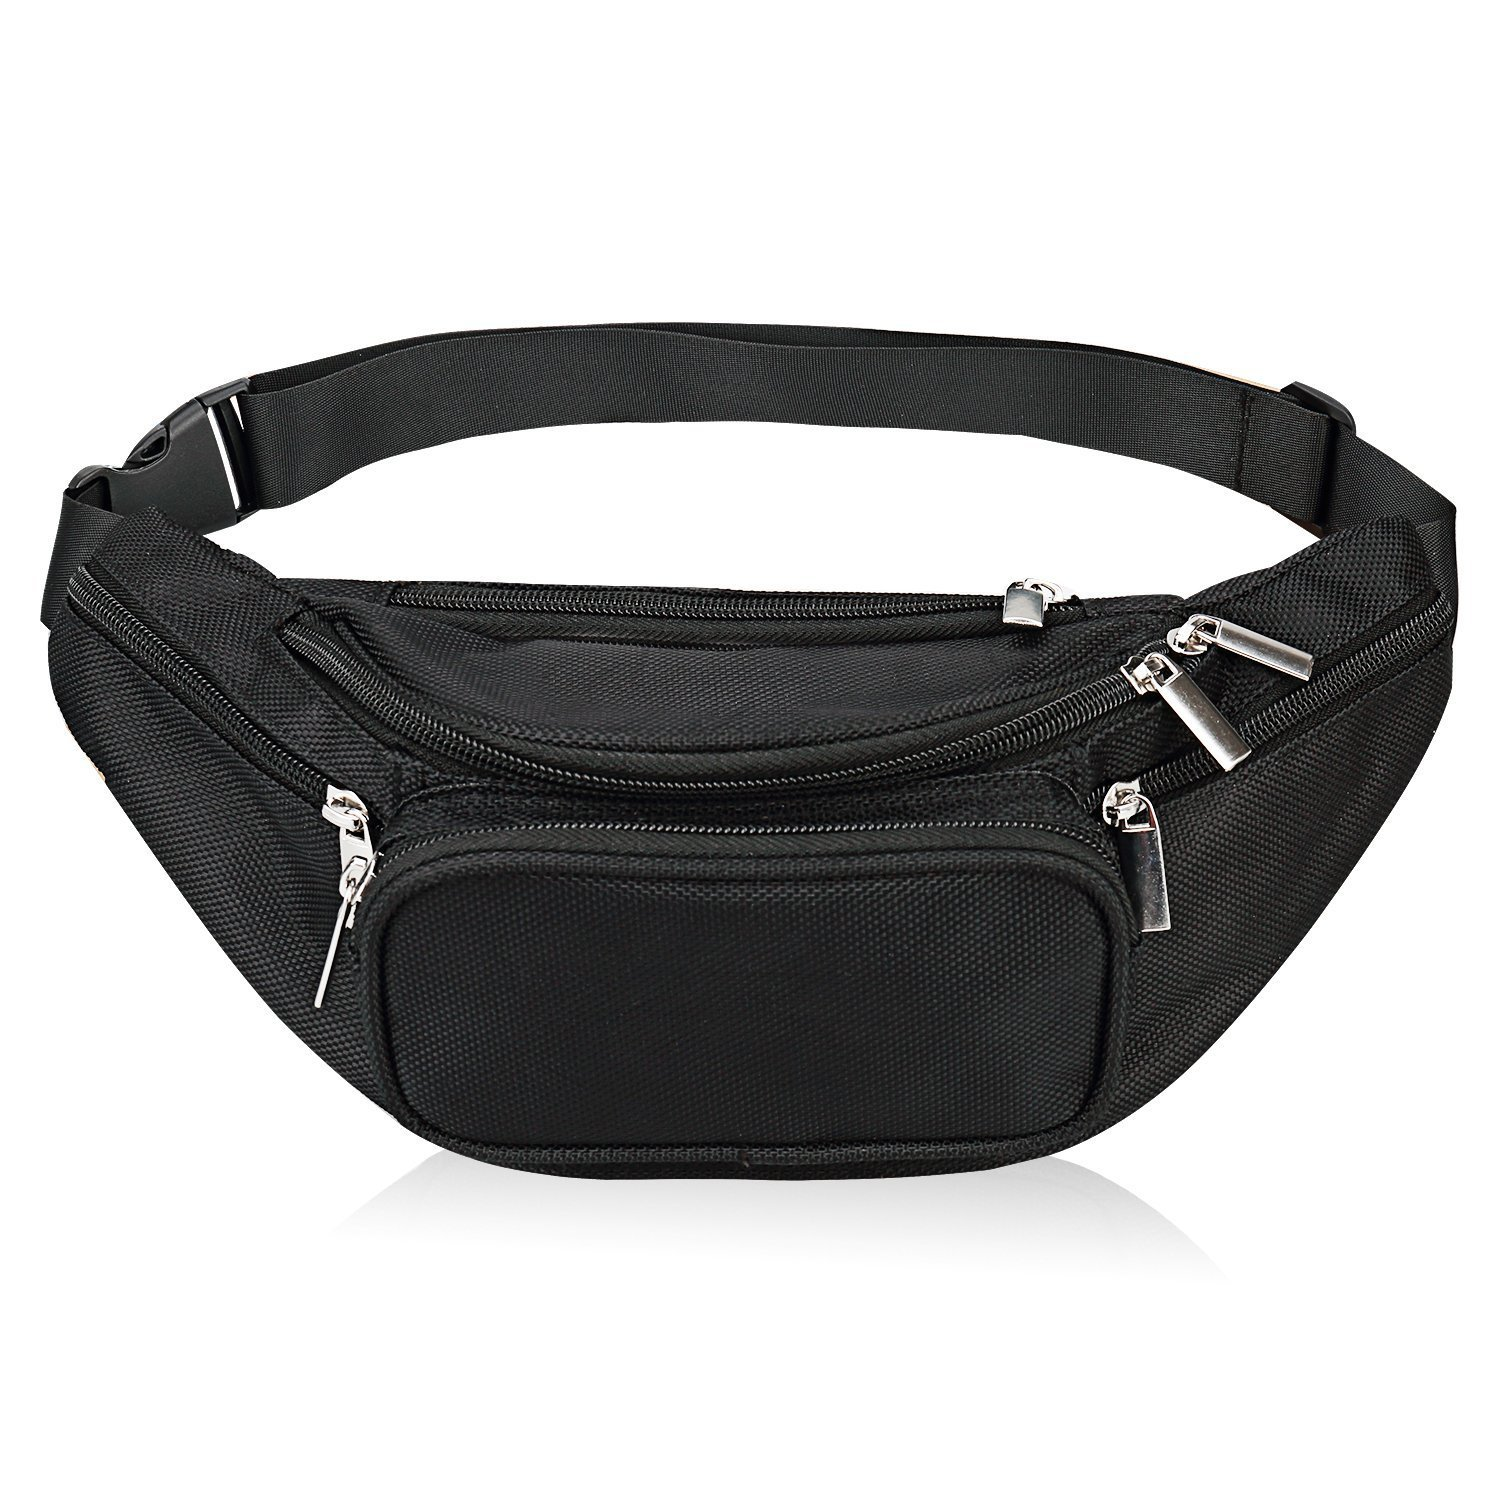 1ad0356db62a1 Fanny Pack 5-Zipper Pockets Nylon Waist Bag for Women Men Trainer for Yoga  Gym Workout Sport and Travel Running